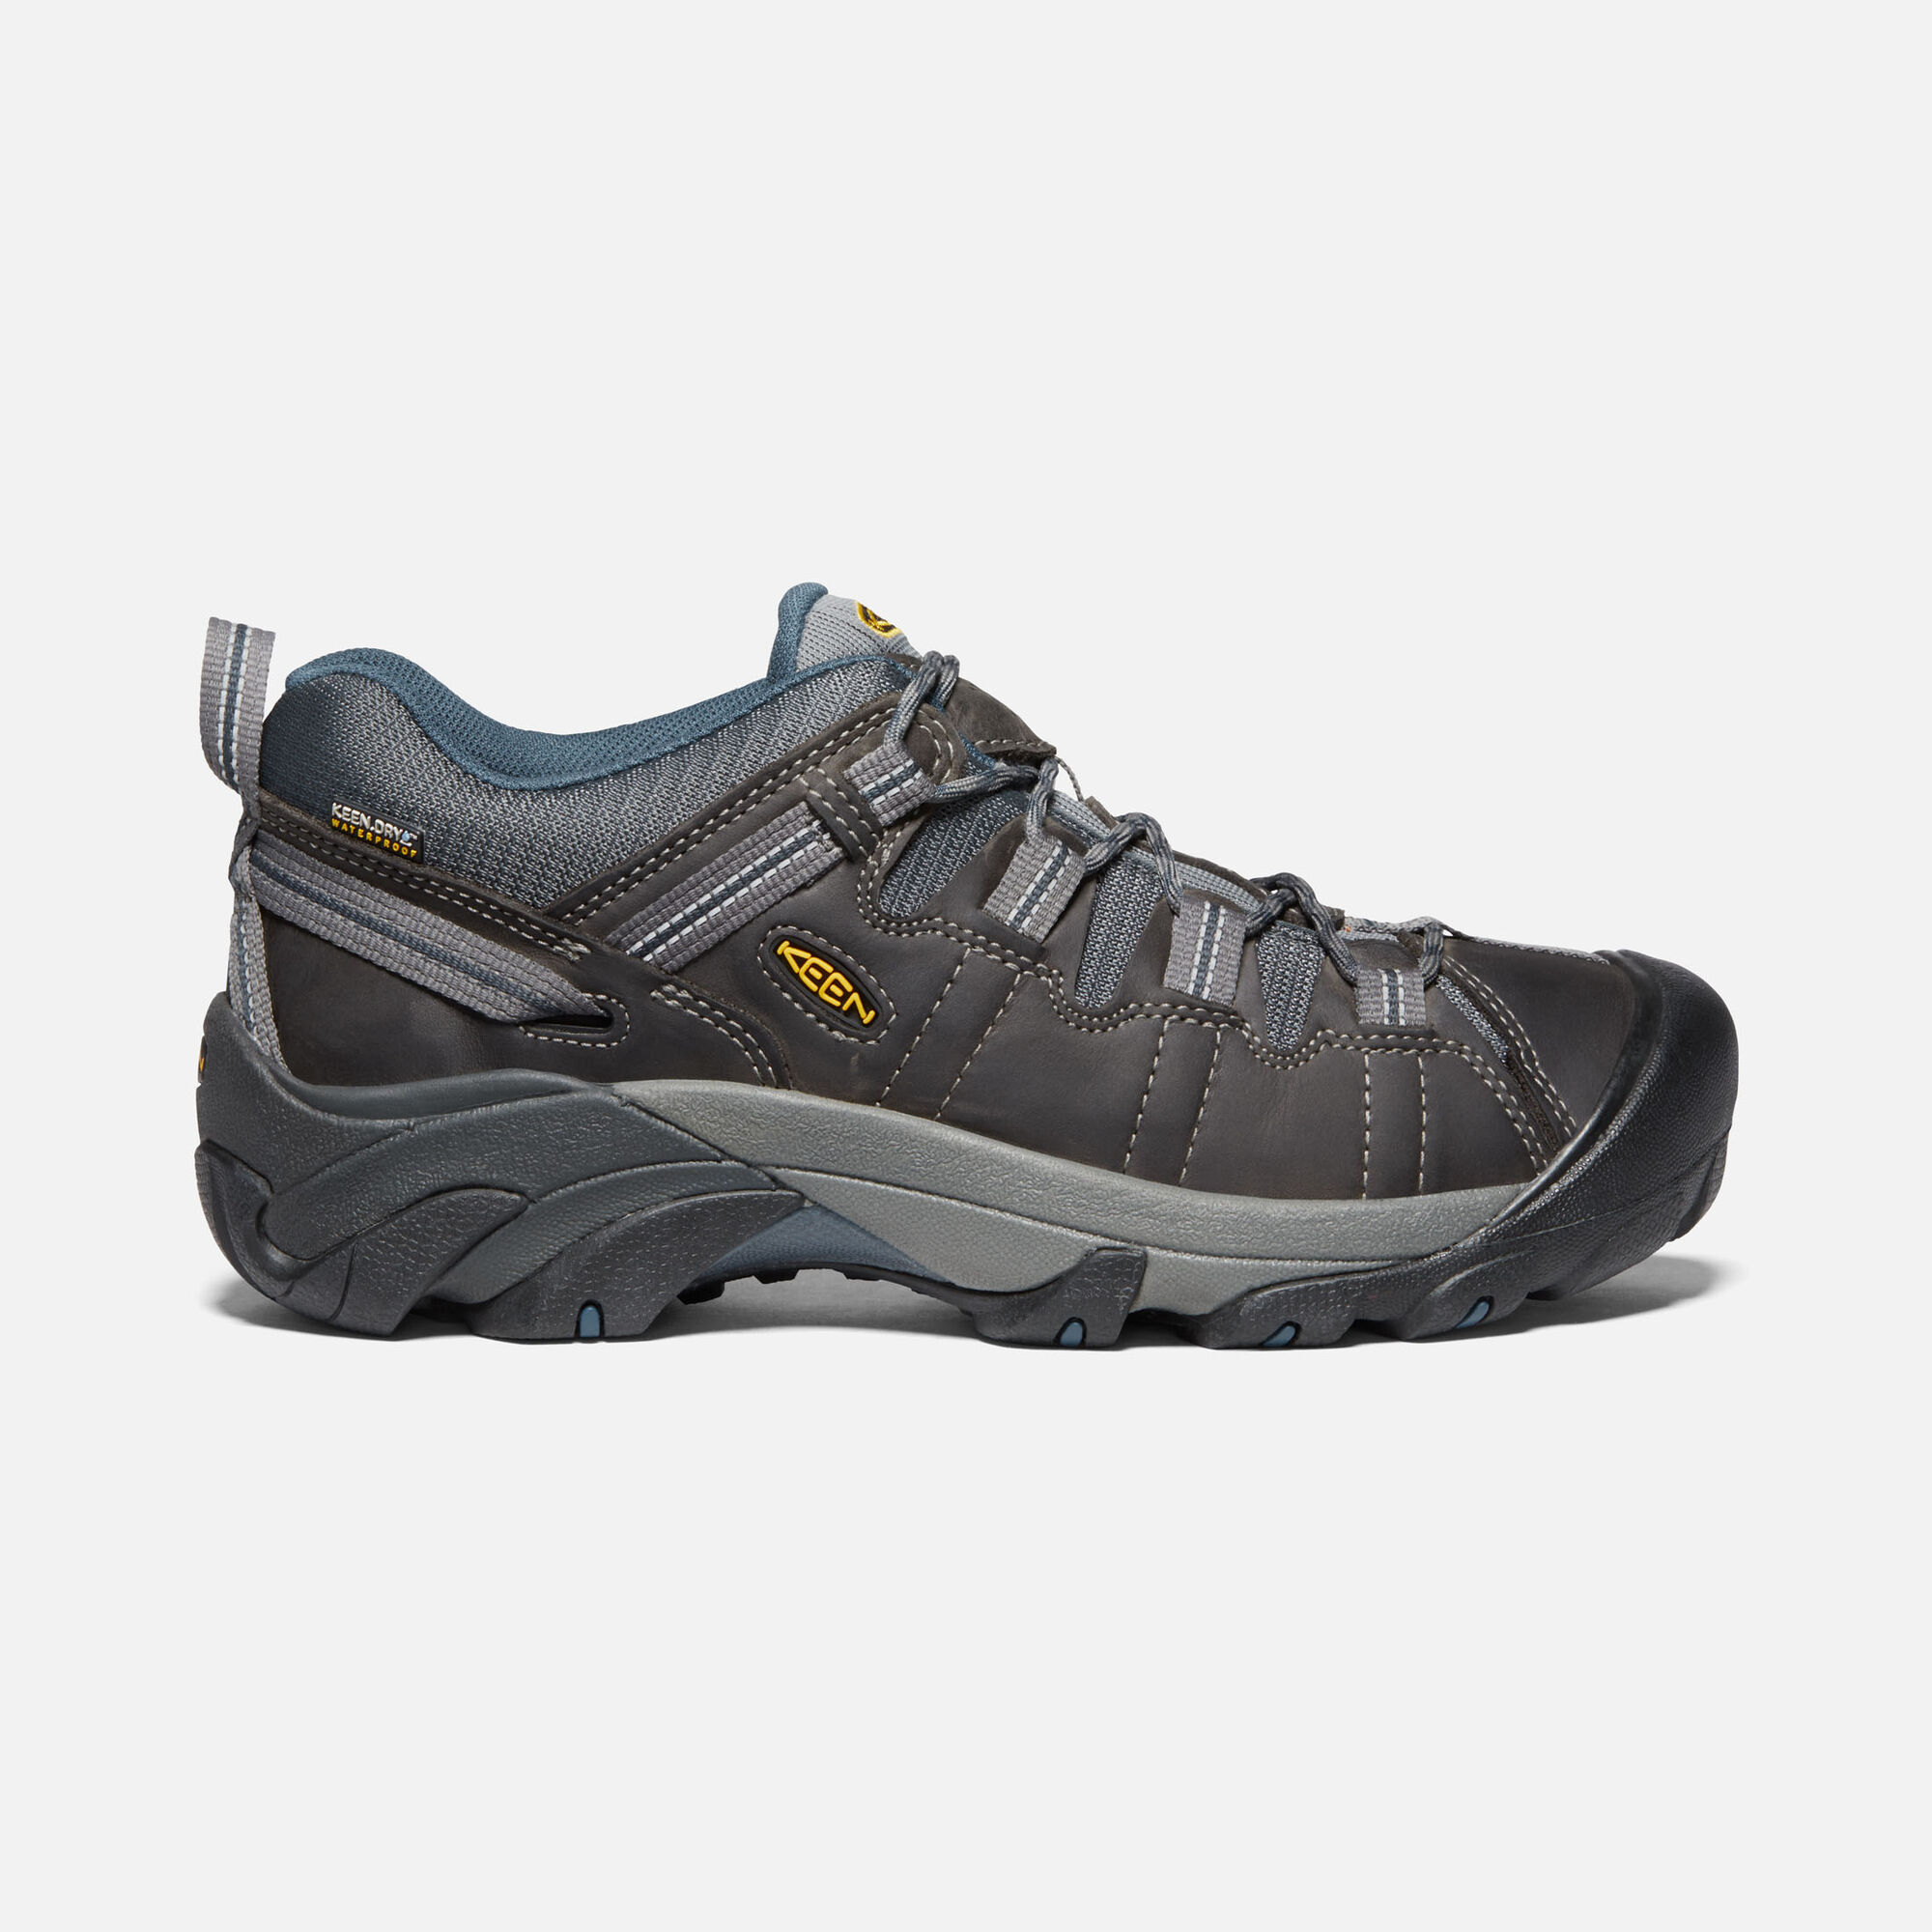 Keen Men S Targhee Ii Waterproof Hiking Shoes Gargoyle